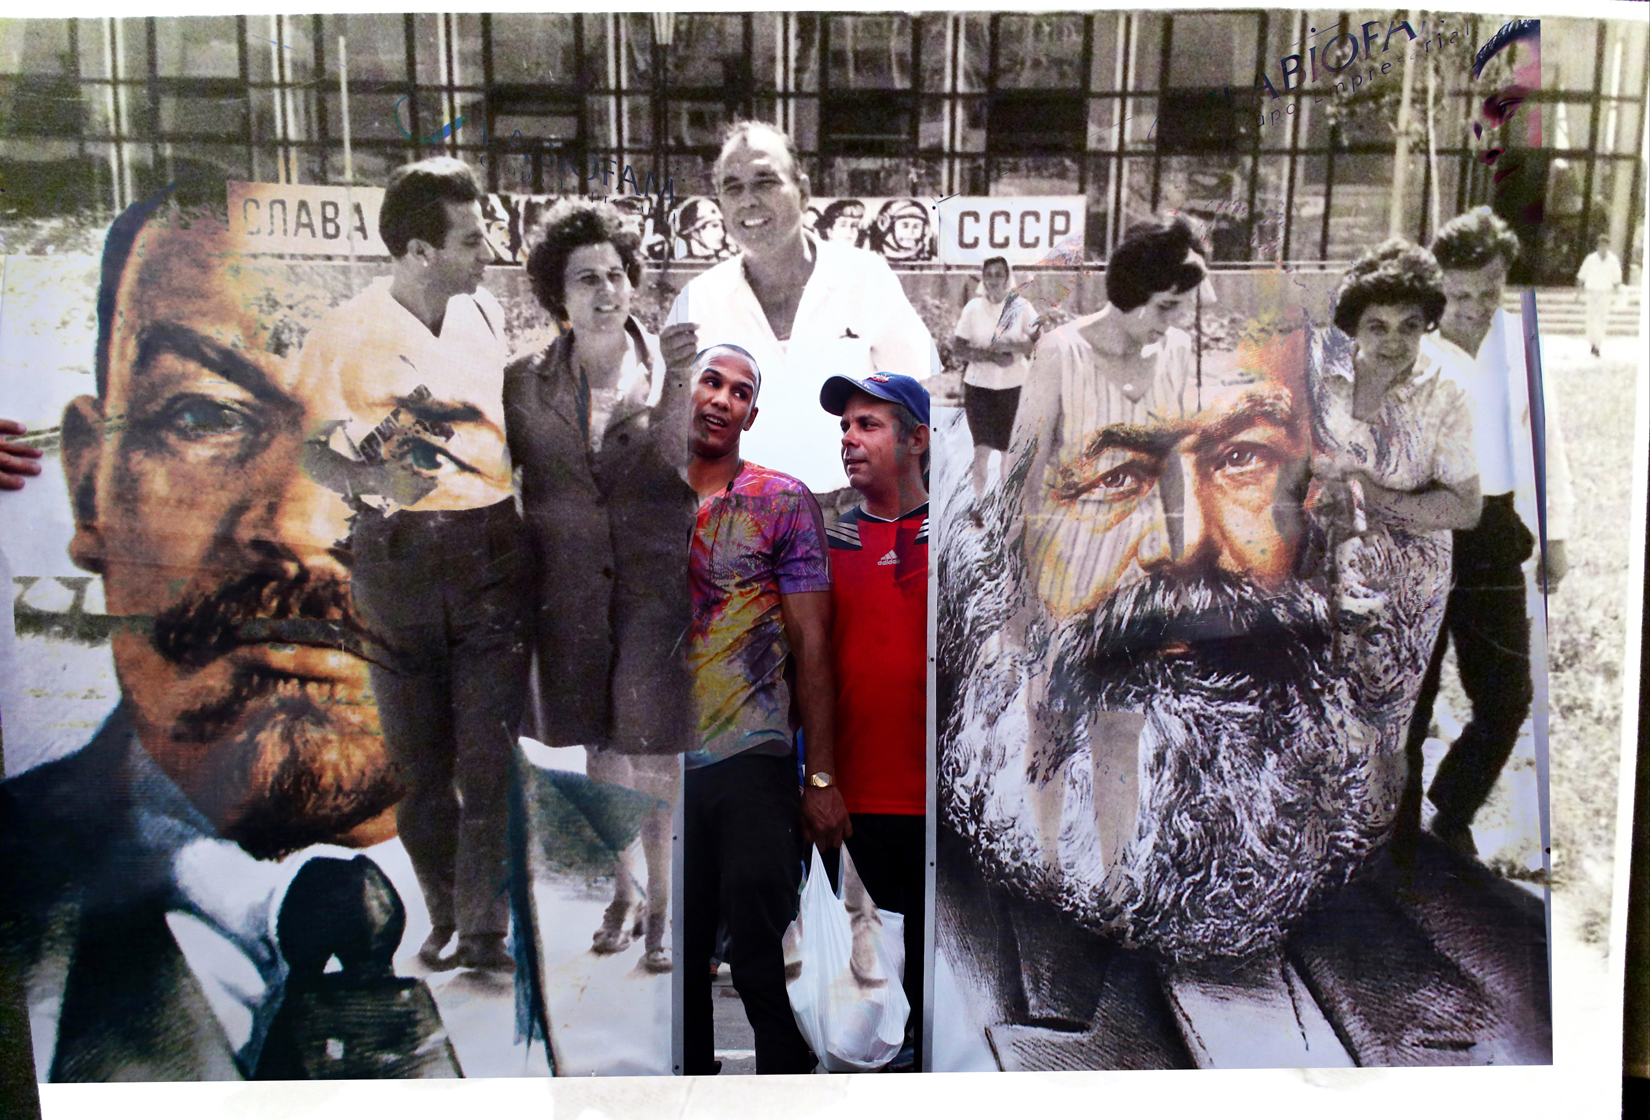 My grandfather (center,) seen walking with Romanian and Bulgarian colleagues in Bulgaria in the 1970s. The banner in the background reads {quote}Glory to the USSR.{quote} And in Cuba, participants in the First of May Labor Day parade hold posters of Russian Communist leader Vladimir Lenin and German Communist revolutionary Karl Marx. This day, known as Día del Trabajo, is a call for people of all nations to show support to socialism and the Cuban Revolution. While attendance is not mandatory, absences from these marches are usually noted and discouraged.